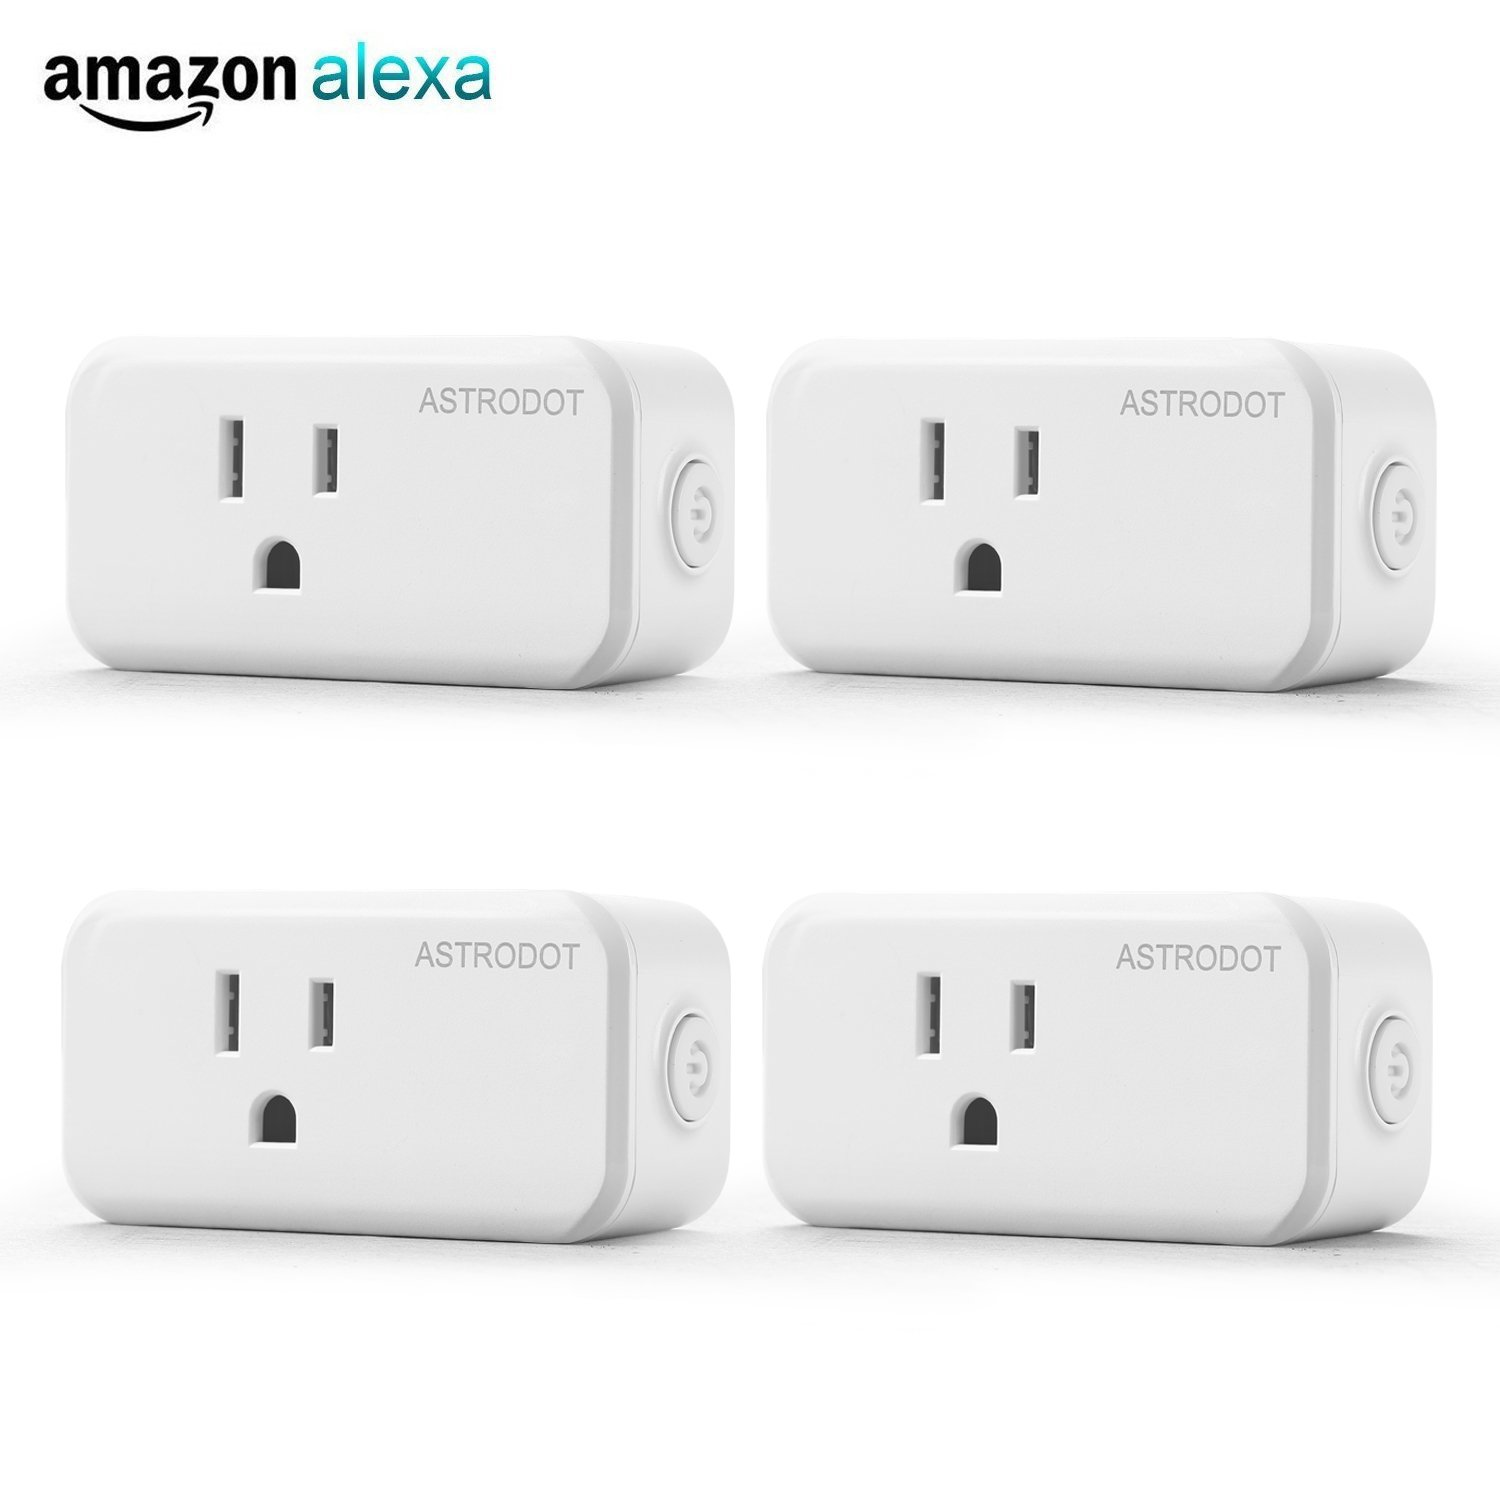 ASTRODOT WiFi Smart Plug Mini, Smart Home Power Control Socket, Remote Control Your Household Equipment from Everywhere, No Hub Required, Works with Amazon Alexa, Echo Dot & Google Home (4)